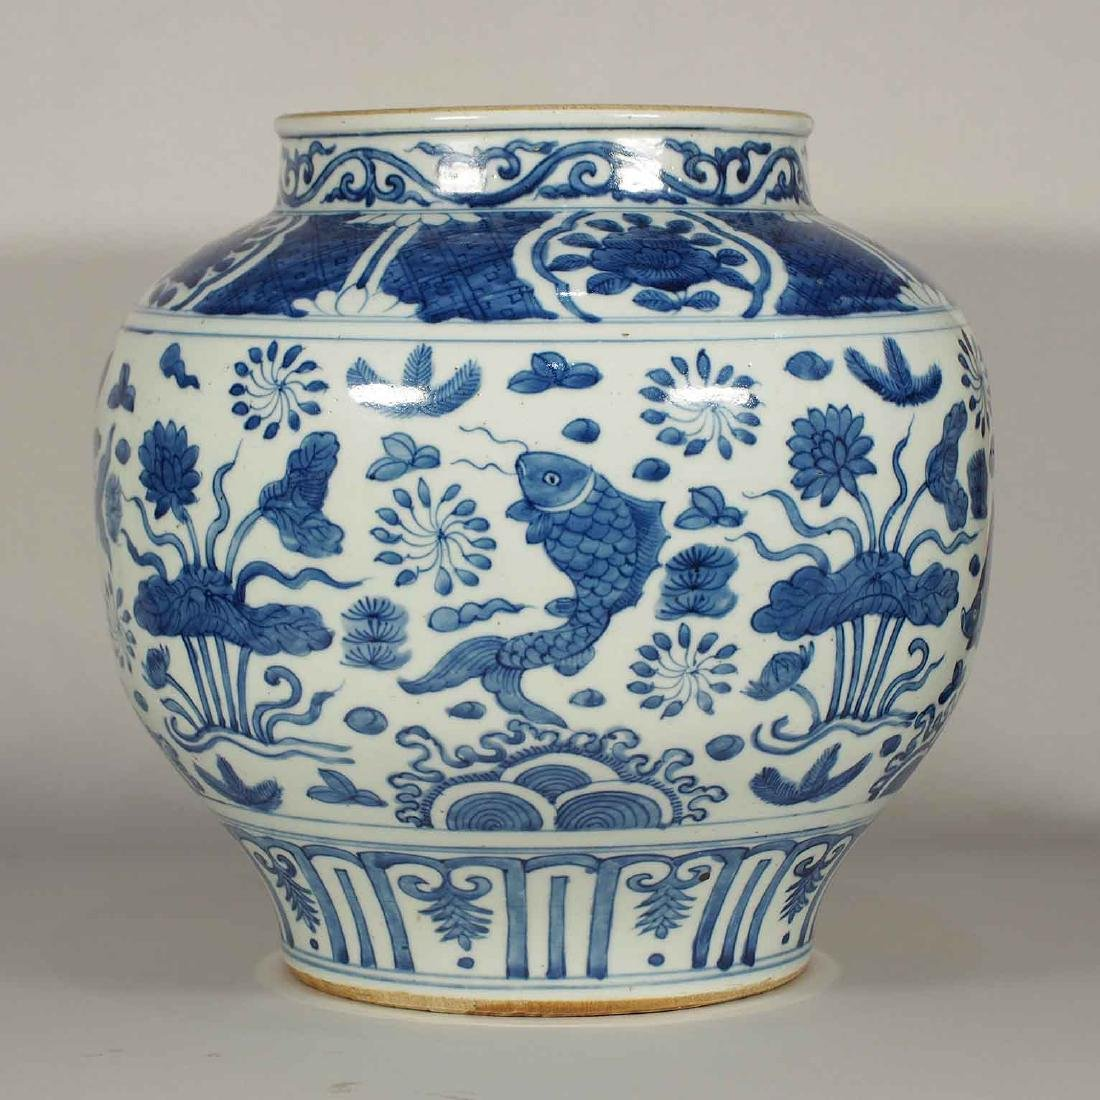 Jar with Fishes in a Pond Design, Wanli, Ming Dynasty - 4